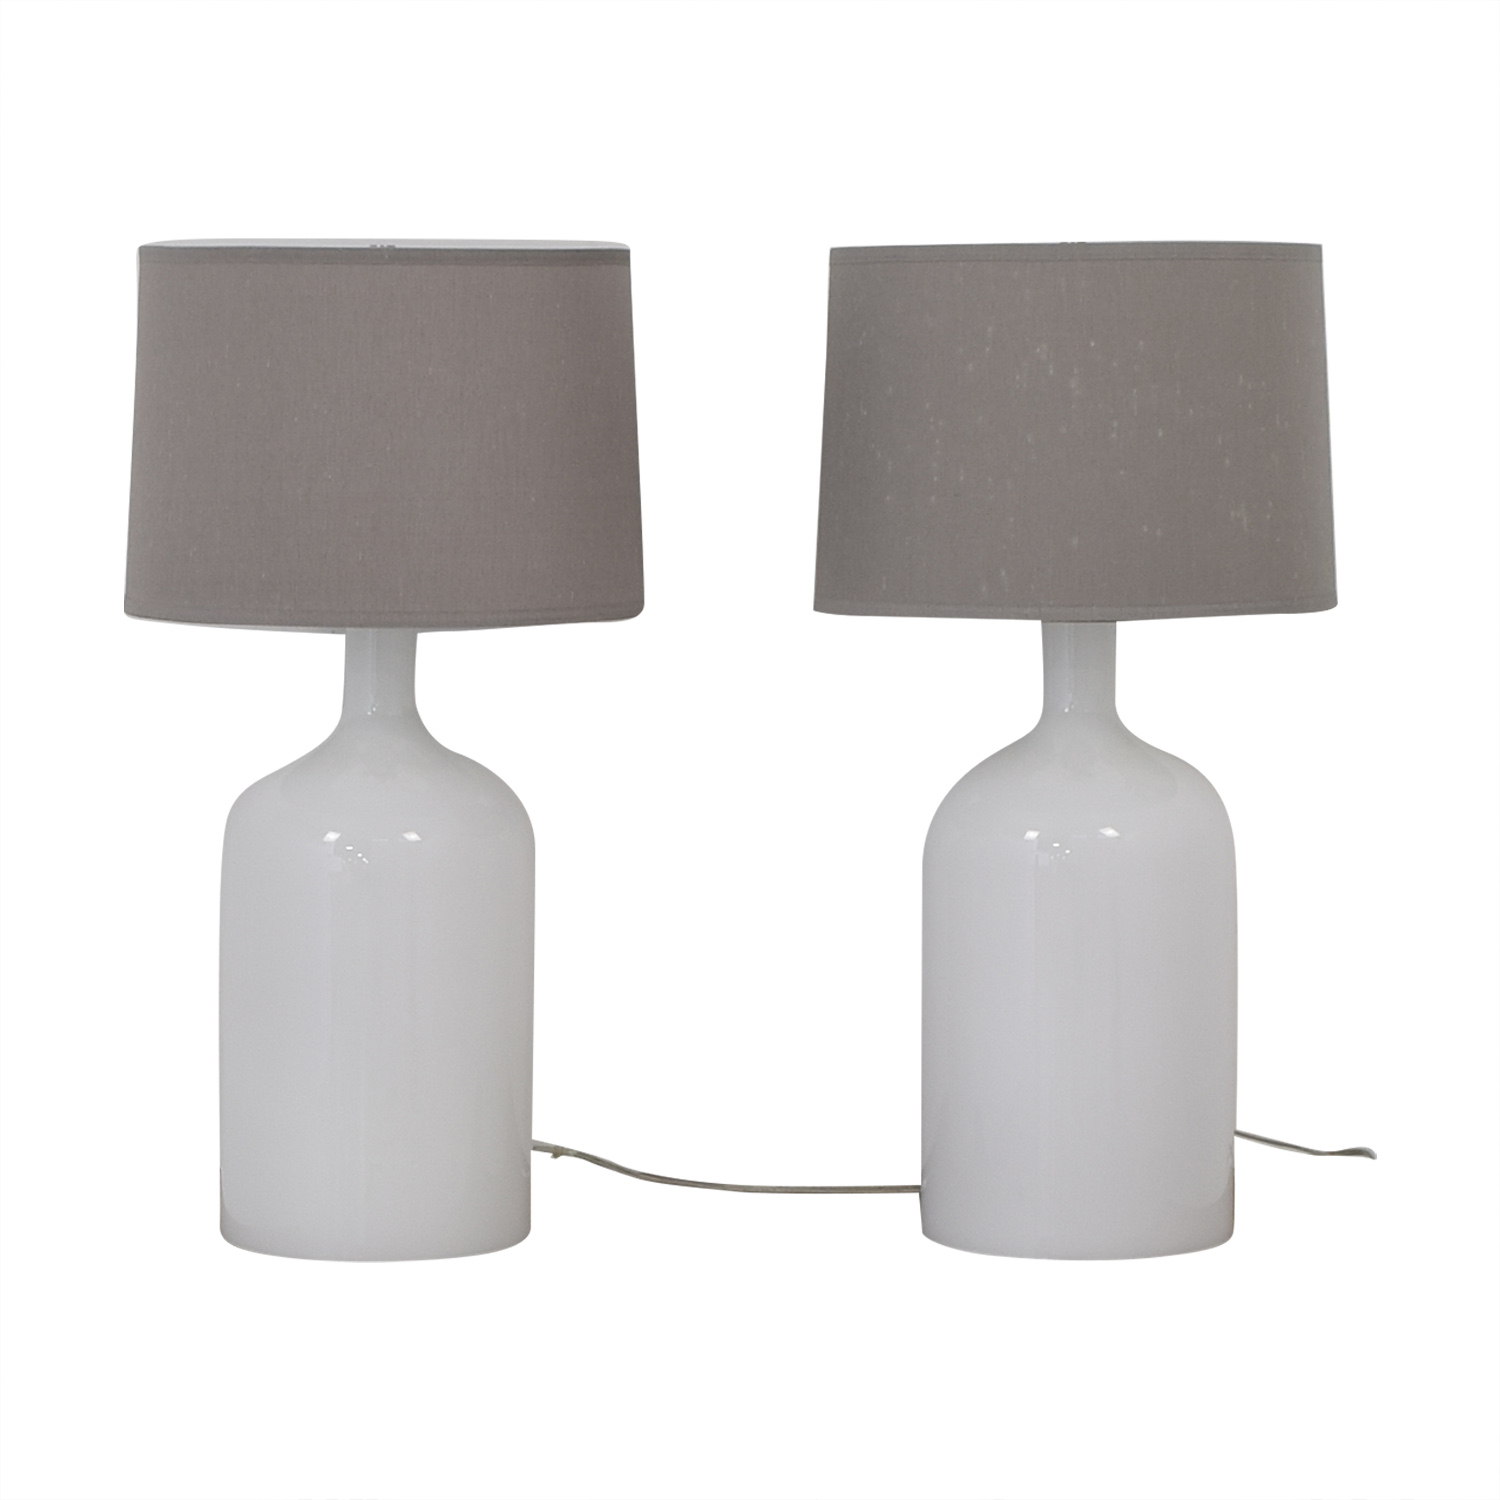 Crate & Barrel Crate & Barrel Della Table Lamps